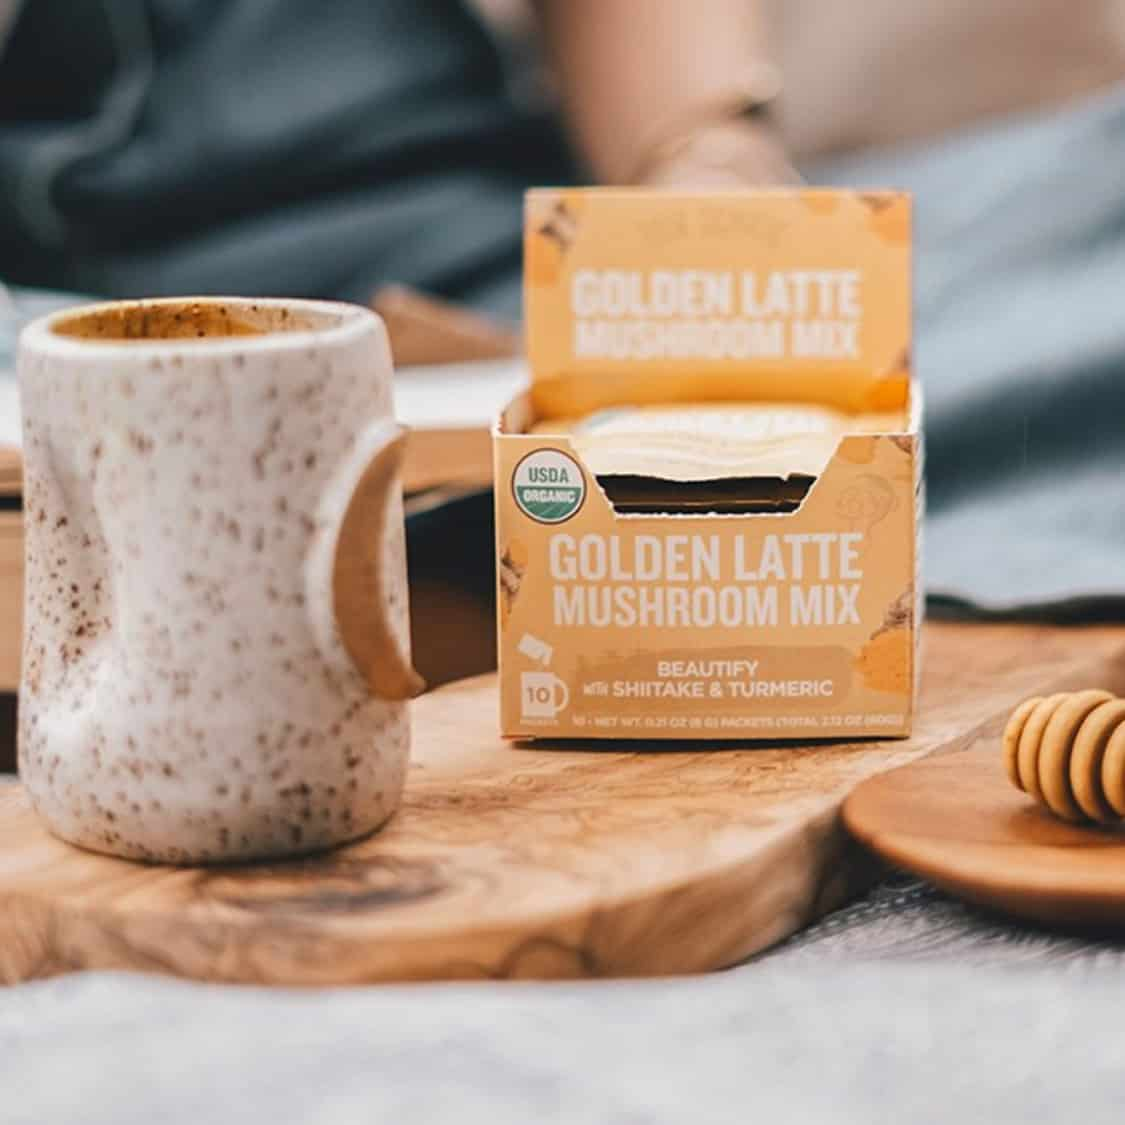 Four Sigmatic Golden Latte Mushroom Mix